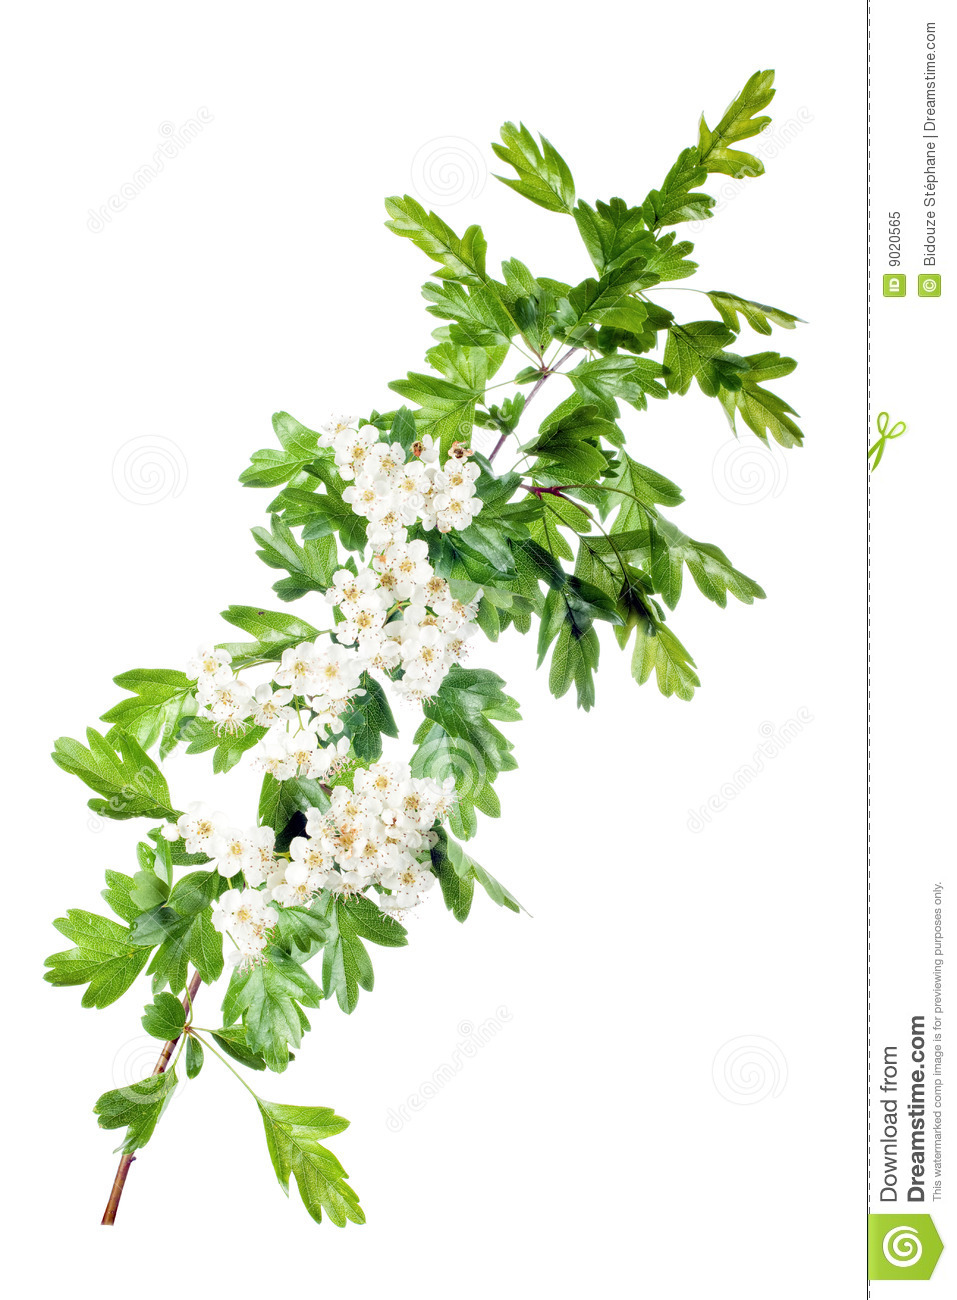 New 3d Animation Wallpaper Spring Hawthorn Blossom Royalty Free Stock Photo Image